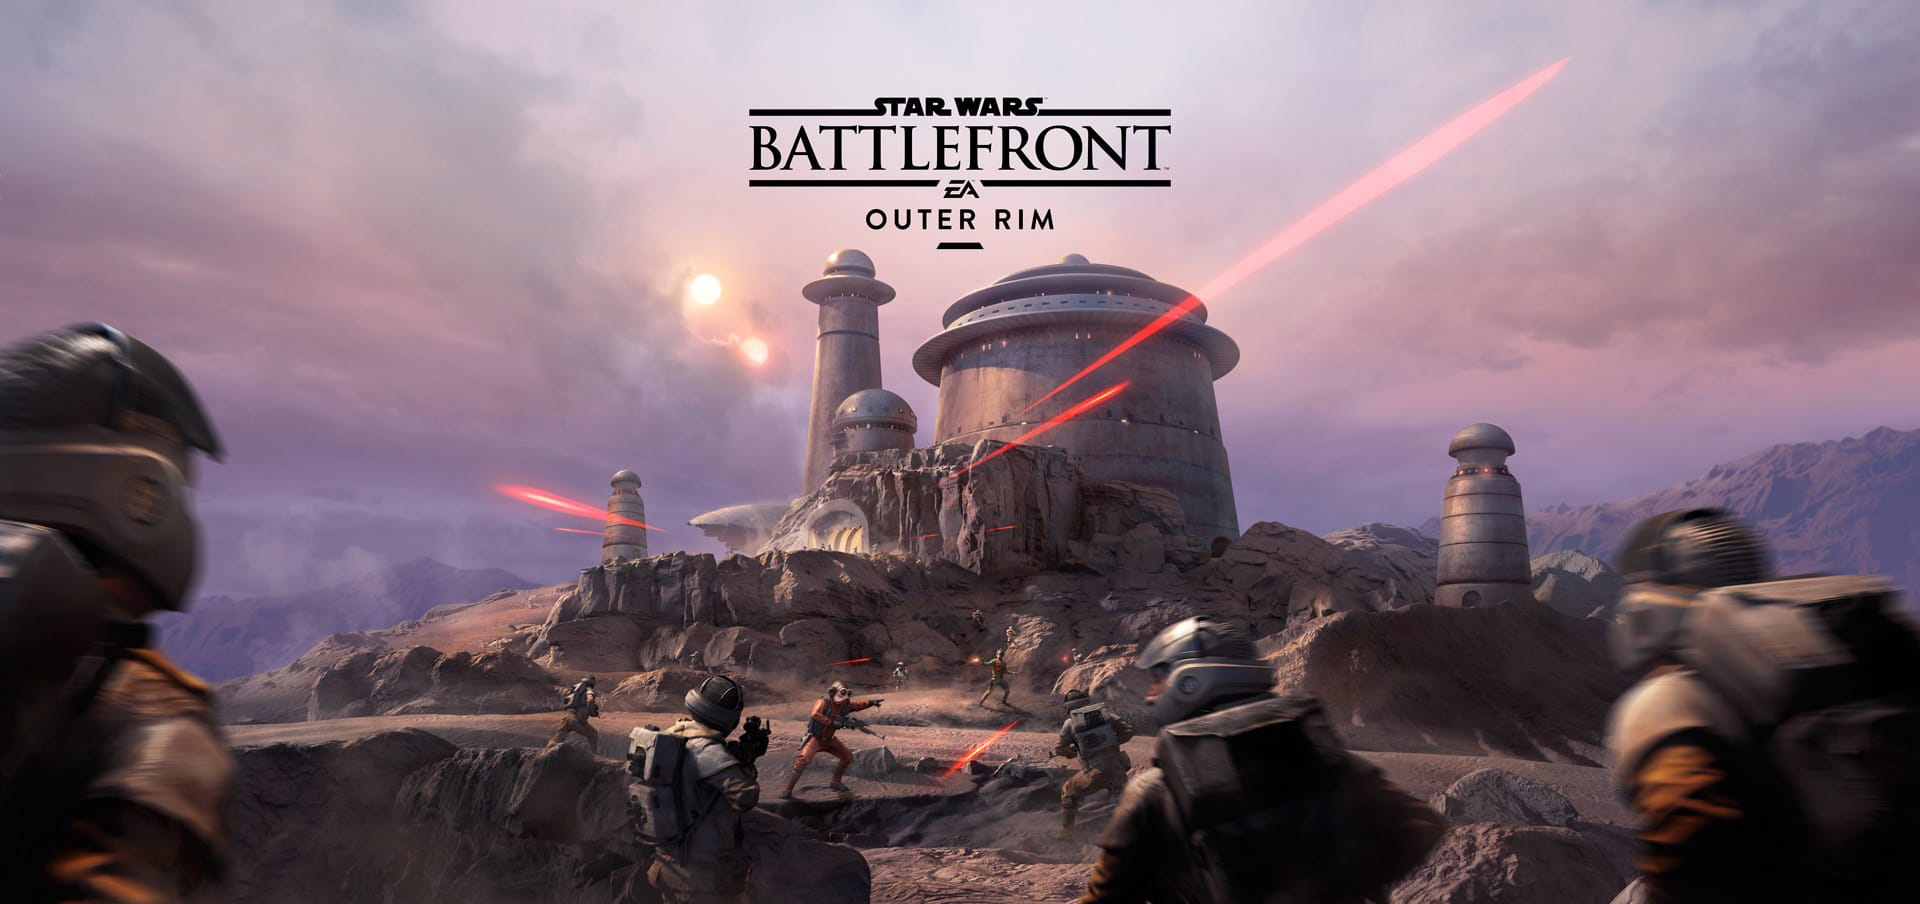 Star-Wars-Battlefront-Outer-Rim